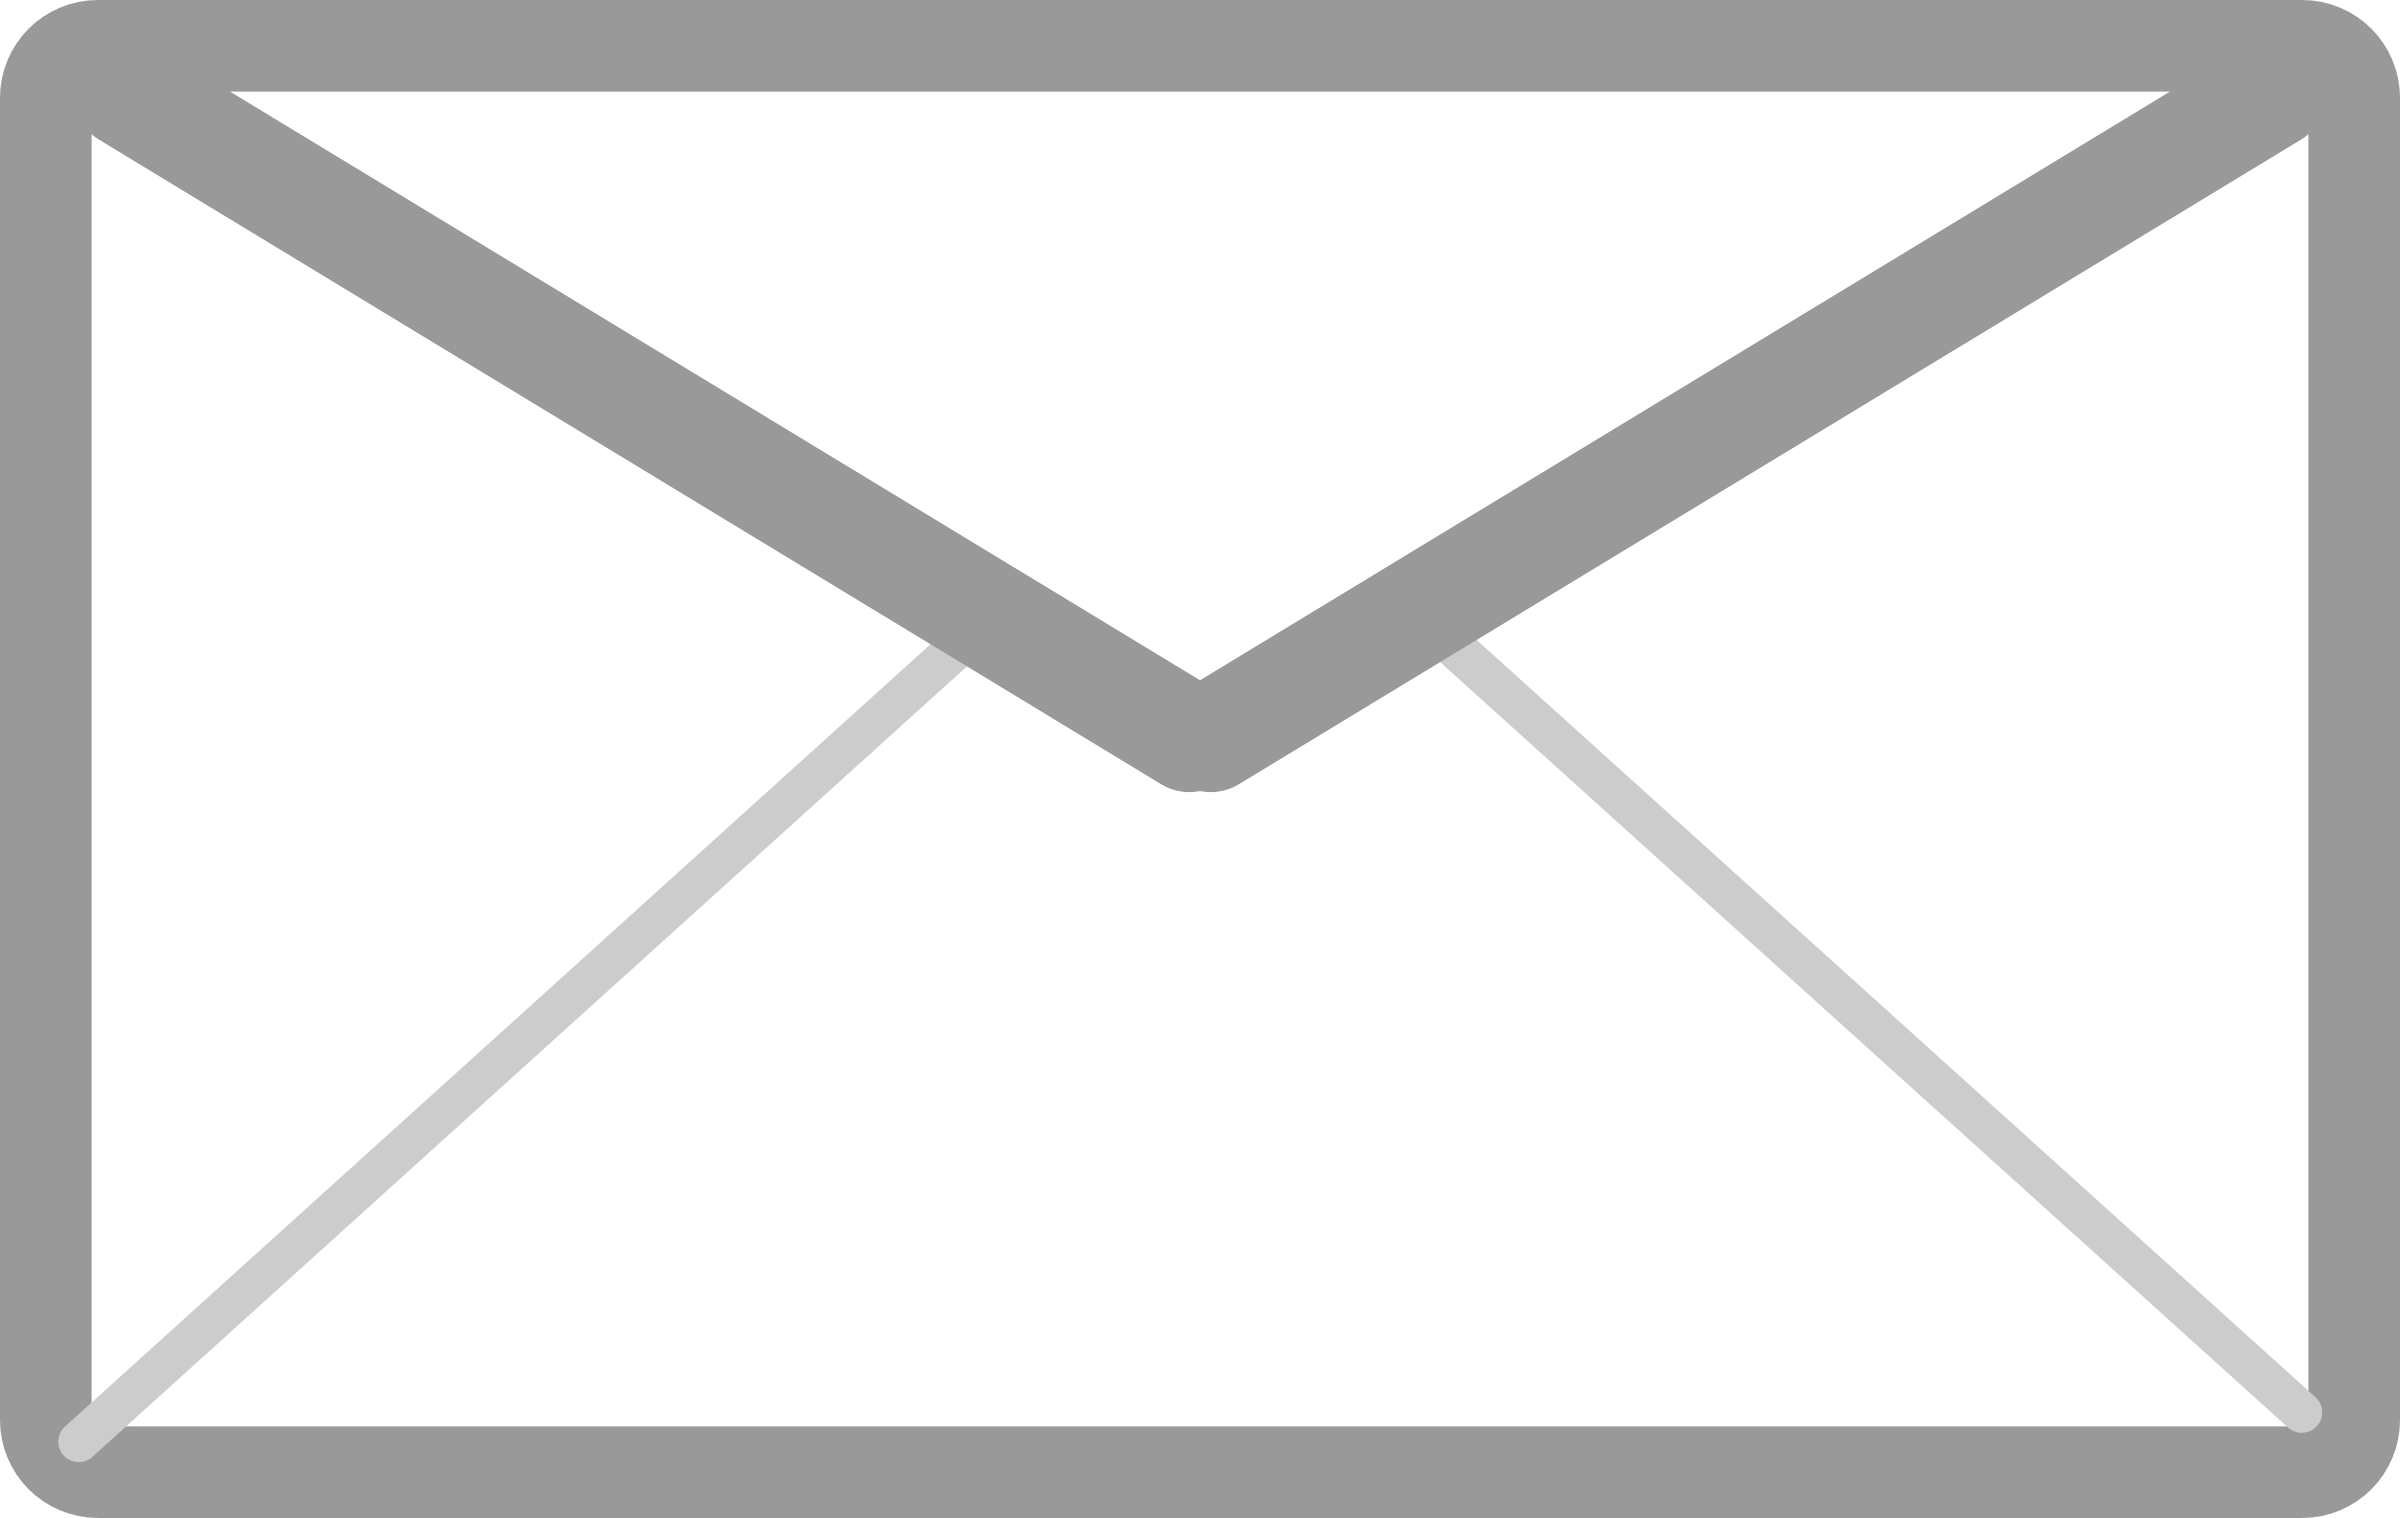 White clipart email Mail Icon and Icon Gray